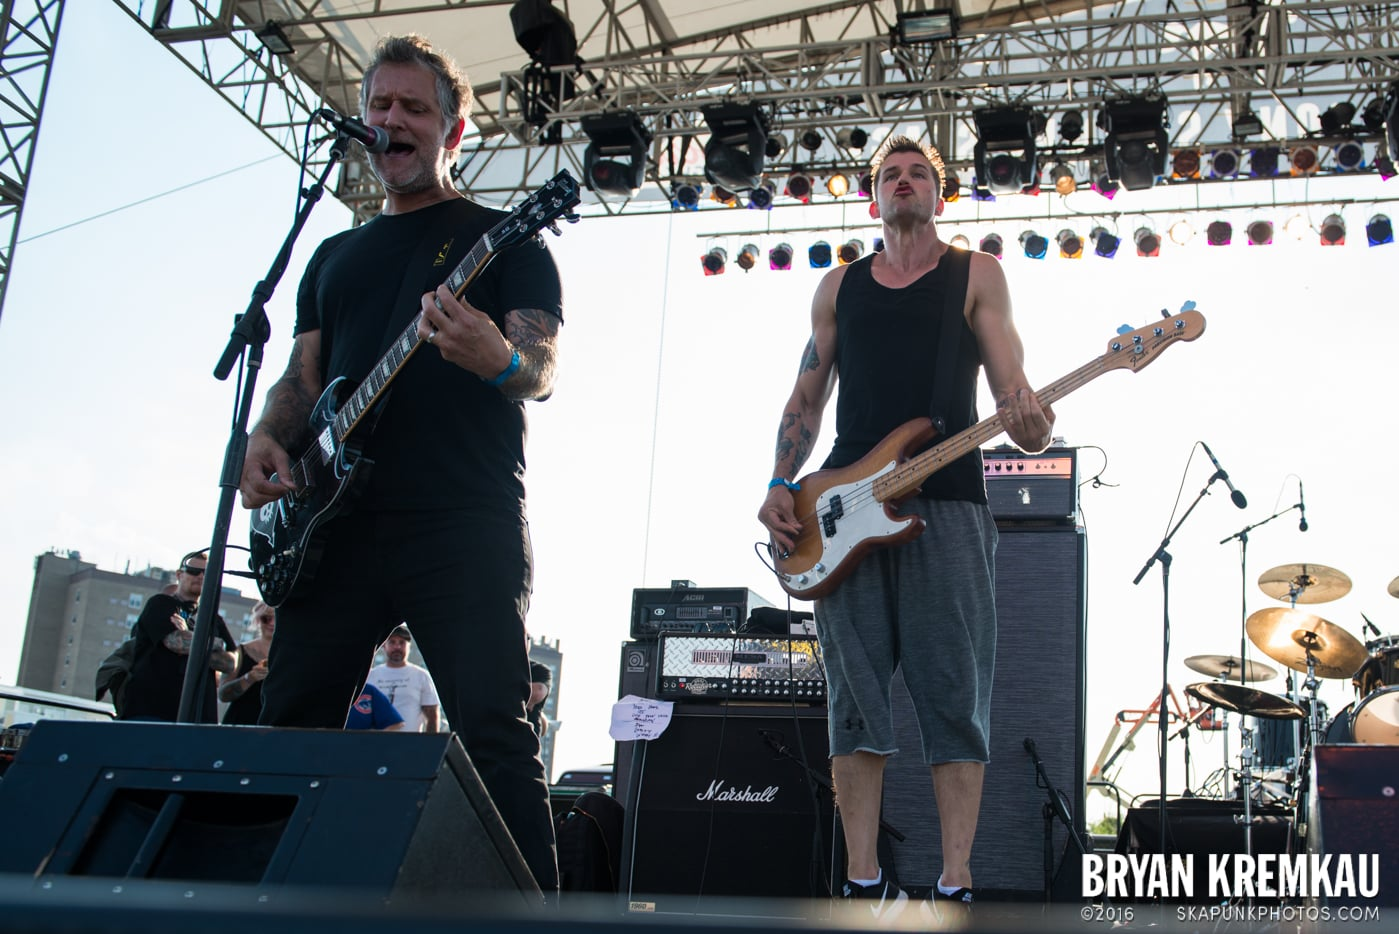 H2O @ Punk Rock Bowling, Stone Pony Summerstage, Asbury Park, NJ - 6.11.16 (29)